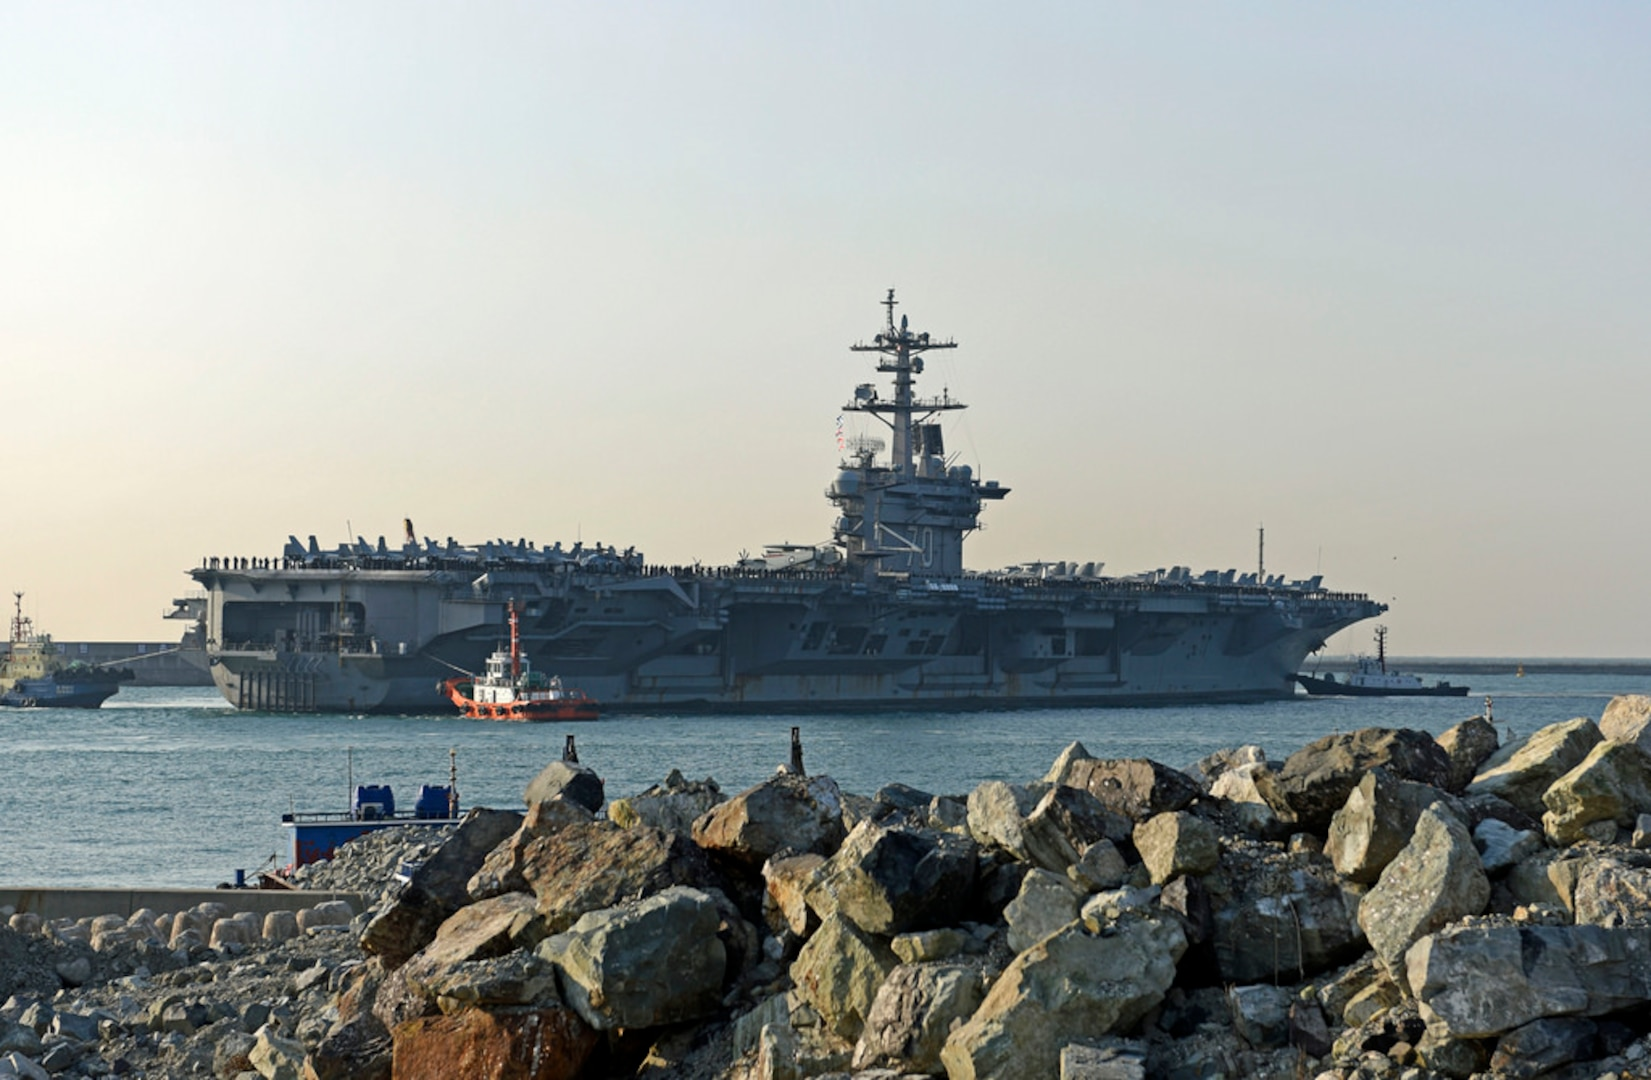 The aircraft carrier USS Carl Vinson (CVN 70) approaches the Republic of Korea (ROK) Fleet headquarters. The Carl Vinson Carrier Strike Group is on a regularly scheduled Western Pacific deployment as part of the U.S. Pacific Fleet-led initiative to extend the command and control functions of U.S. 3rd Fleet.